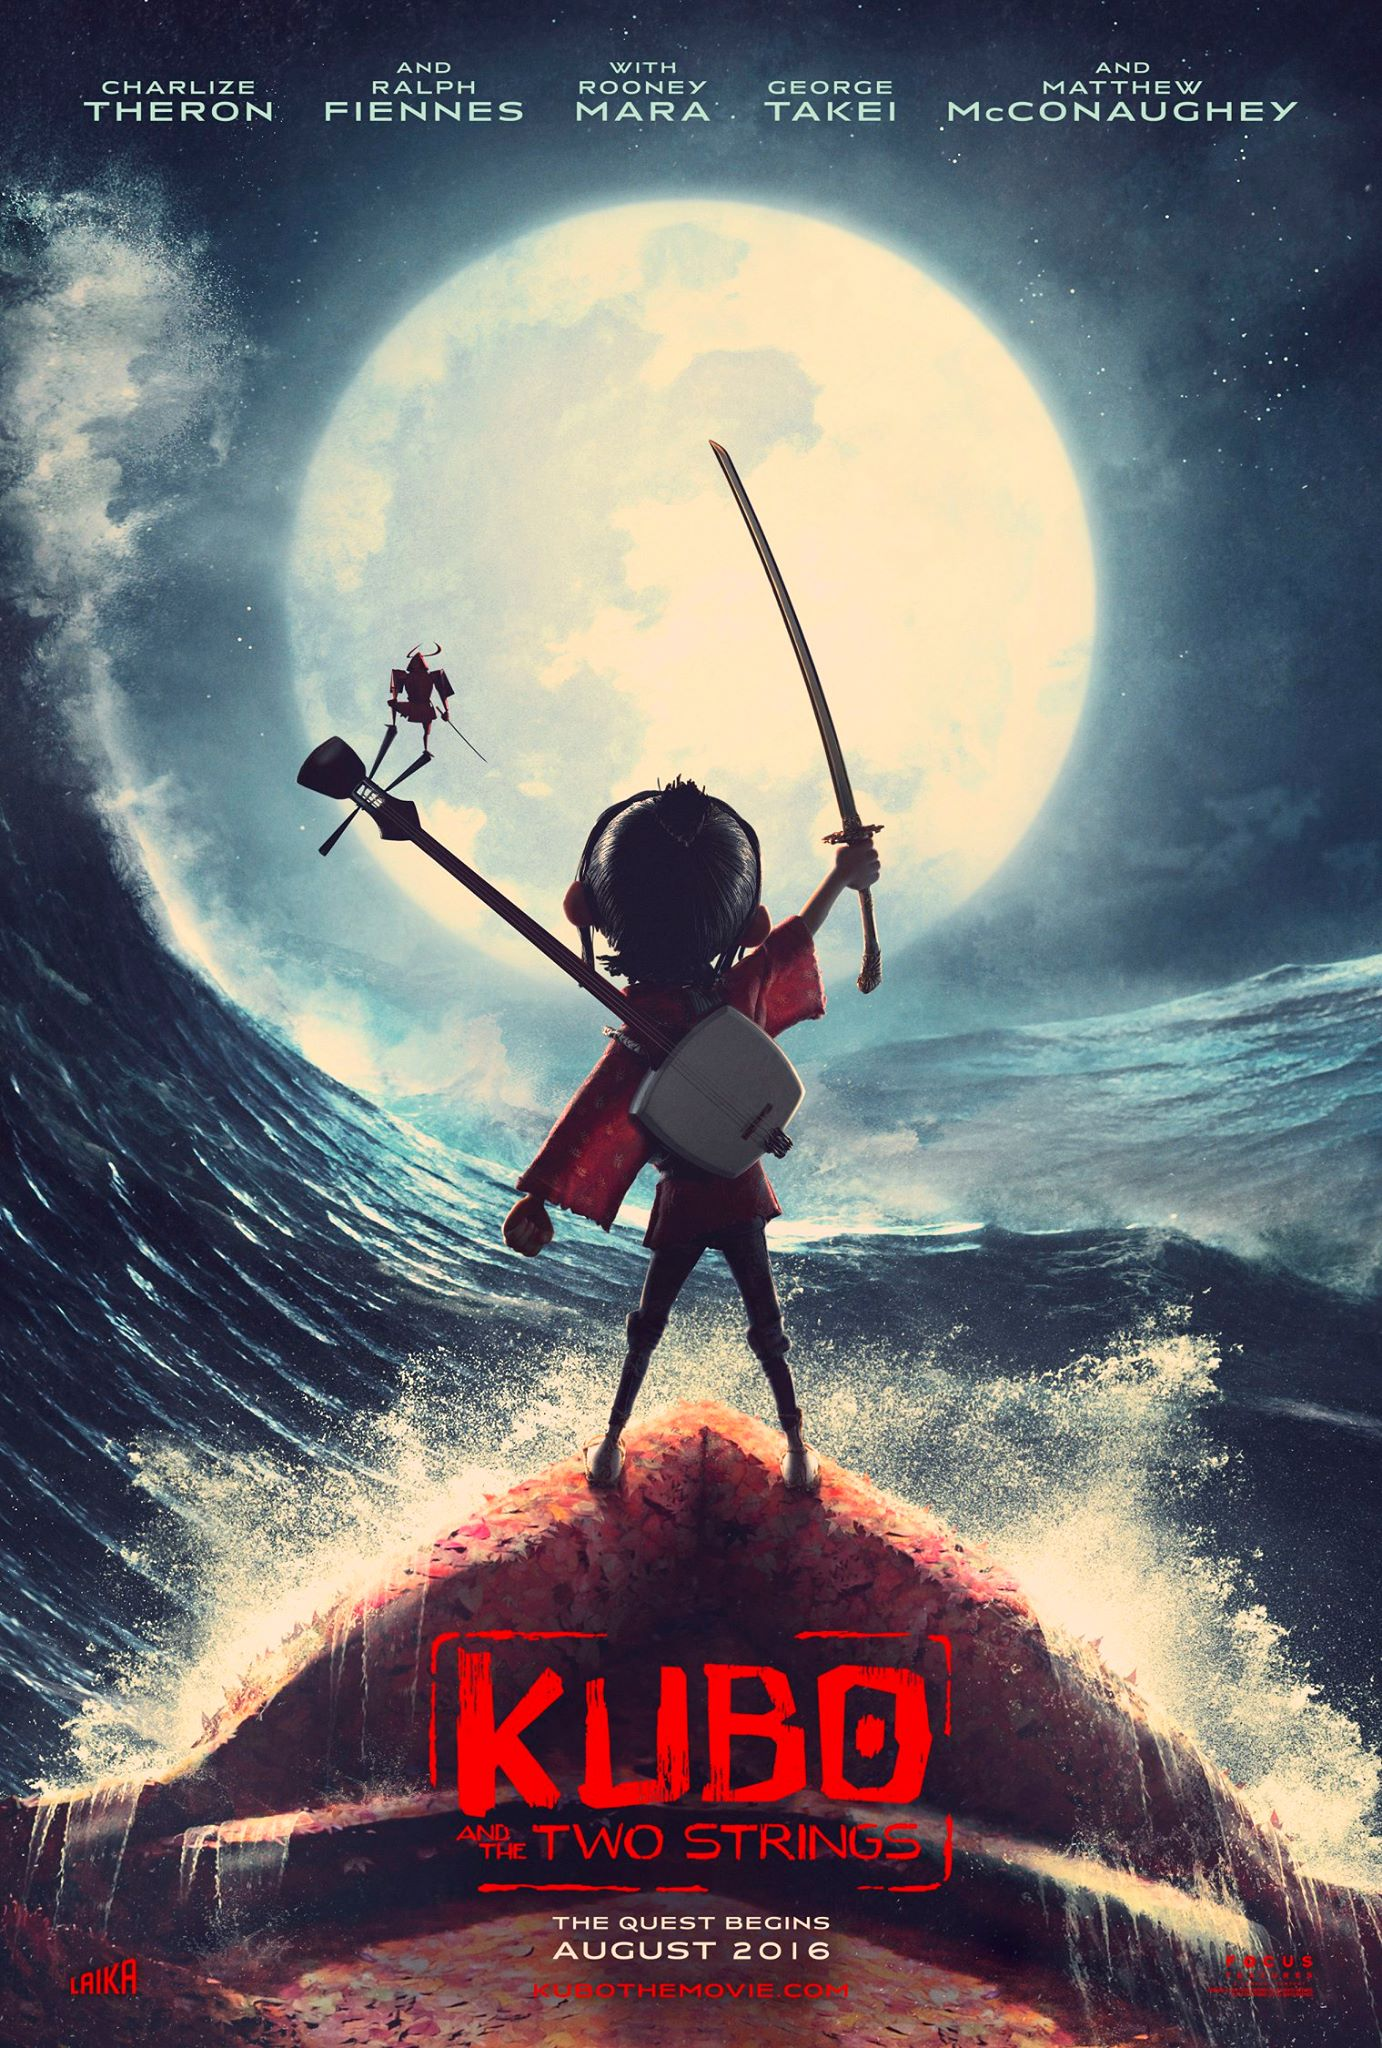 Kubo and the Two Strings - Teaser Trailer